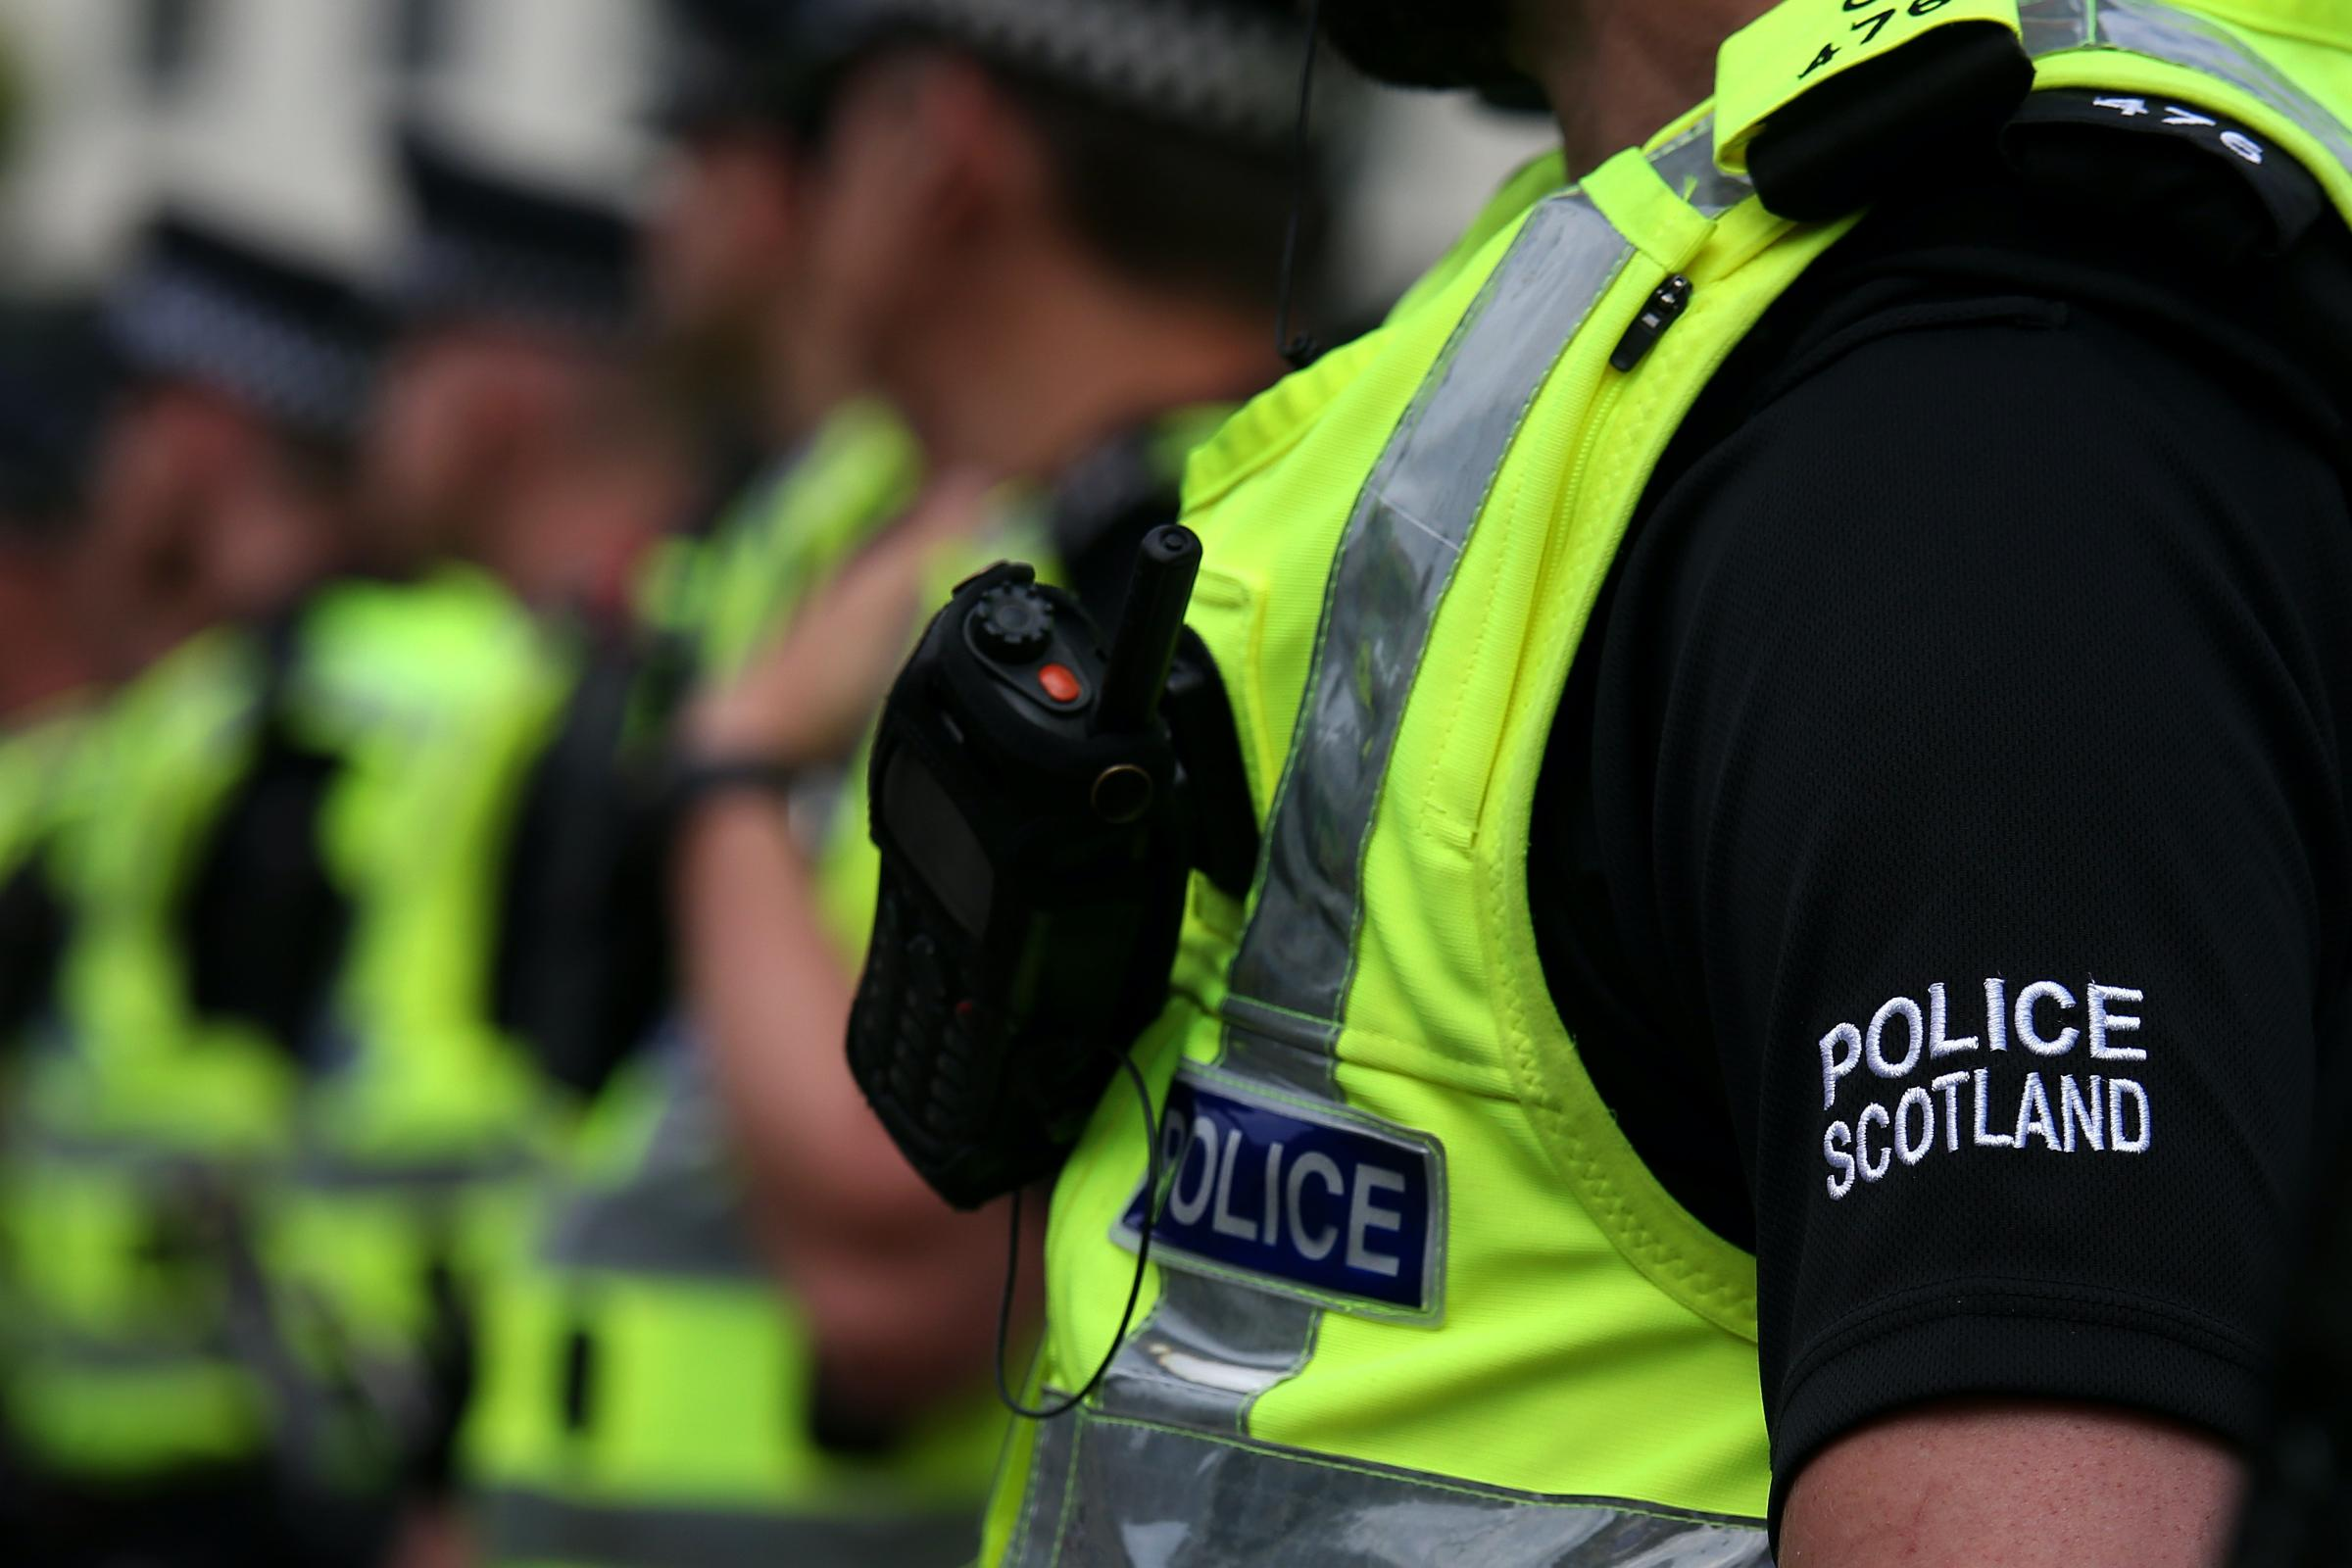 Baird Street: Busy streets closed as police respond to 'concerns for person'